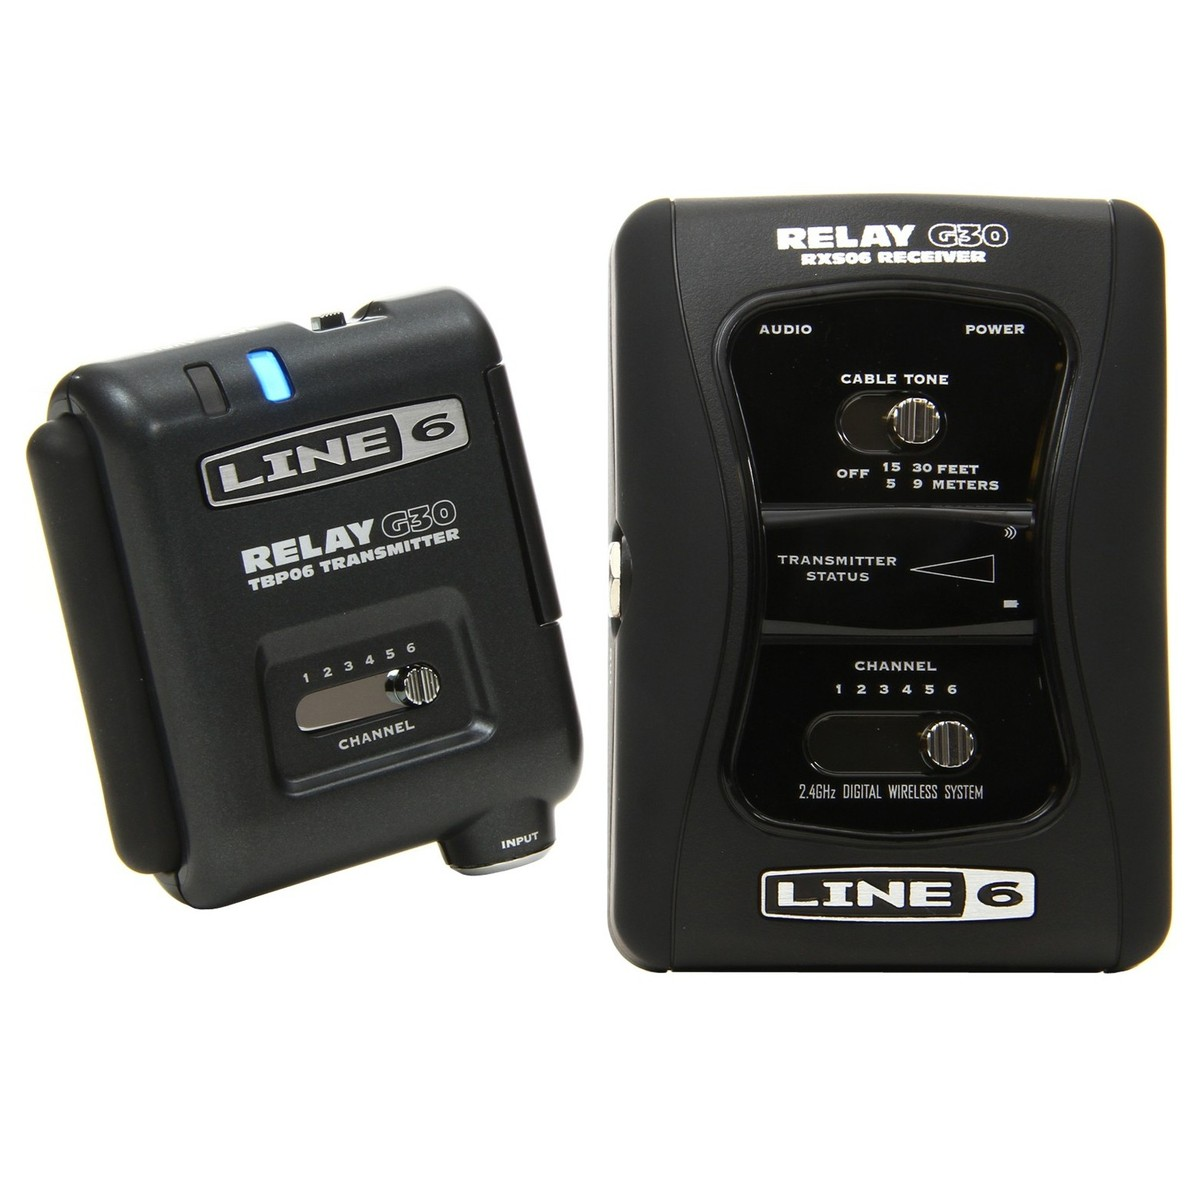 line 6 relay g30 wireless guitar system at gear4music. Black Bedroom Furniture Sets. Home Design Ideas